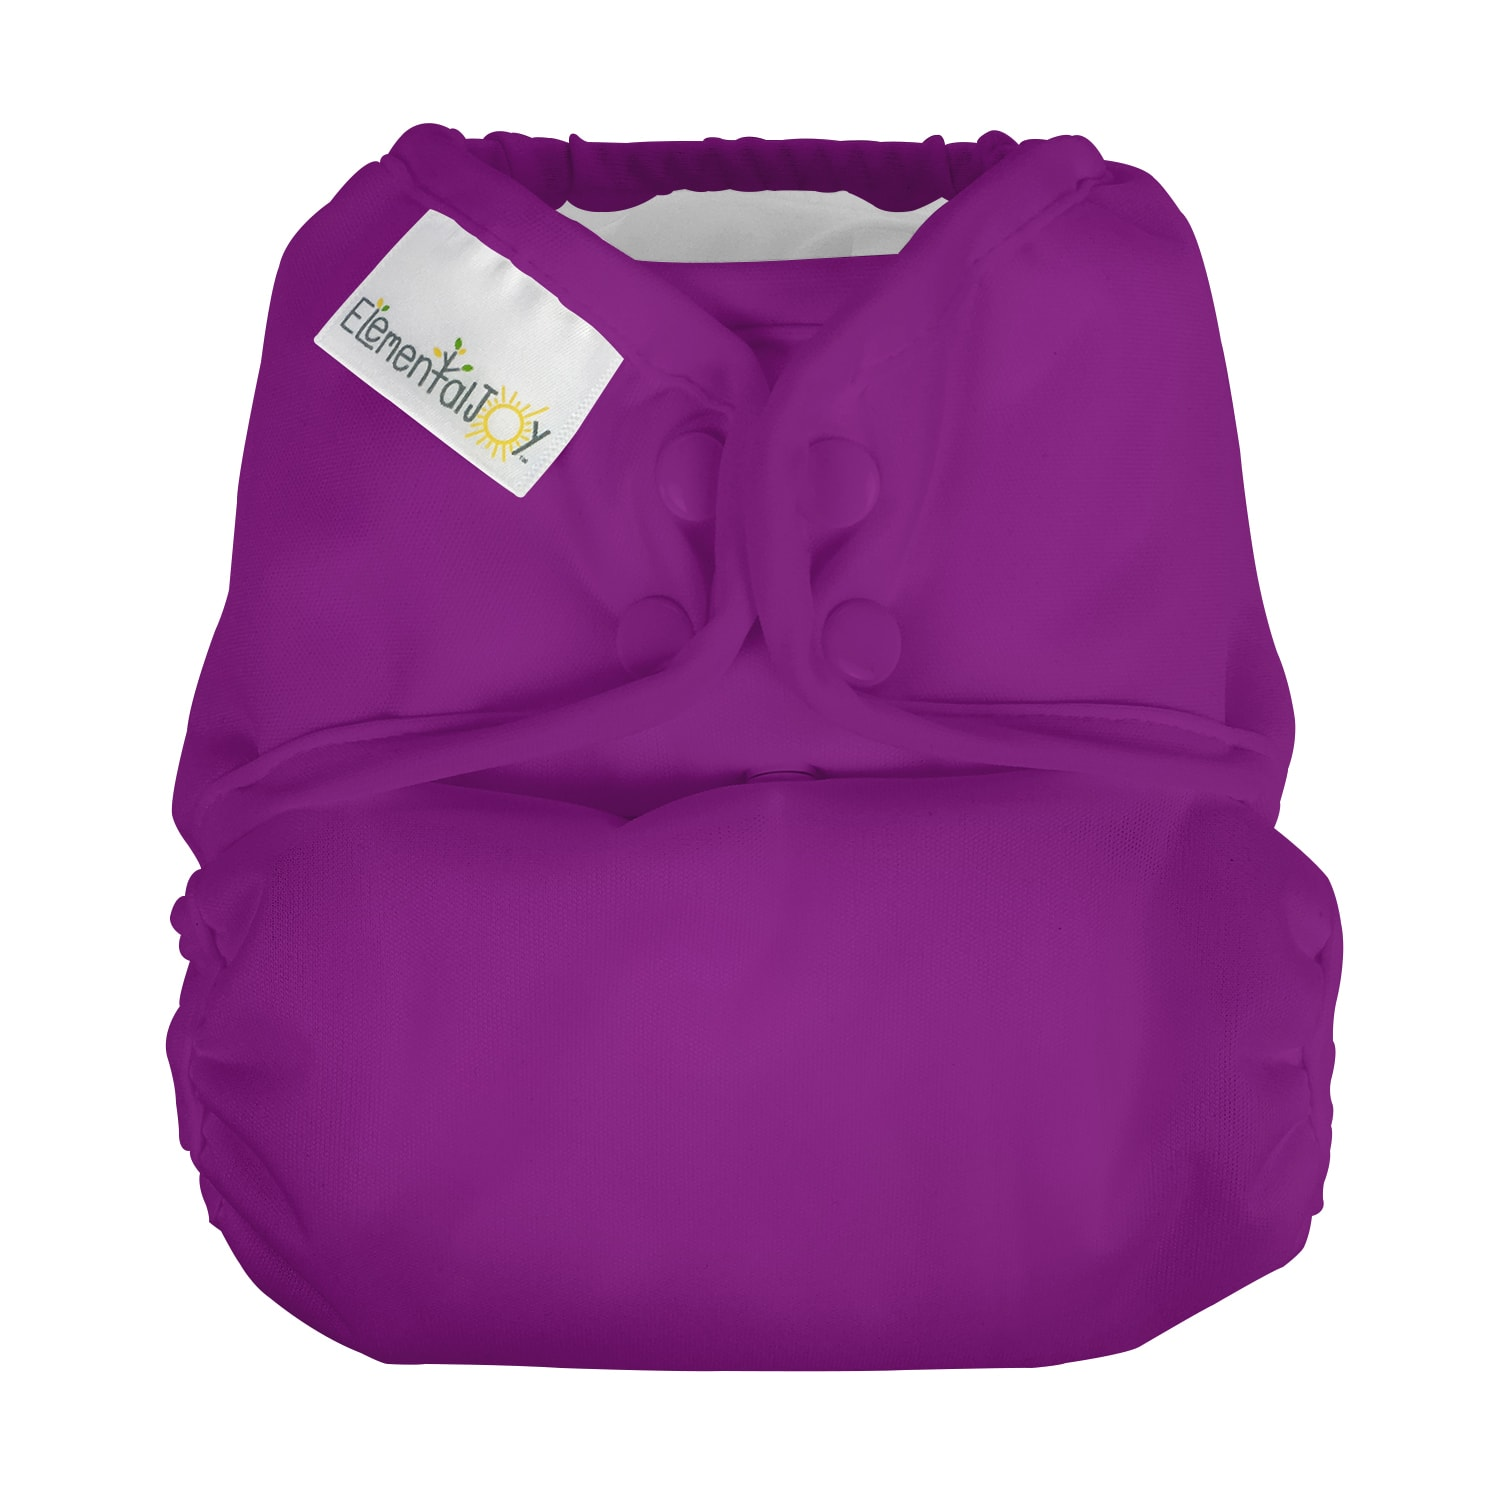 Elemental Joy Pocket Cloth Diaper - Dazzle